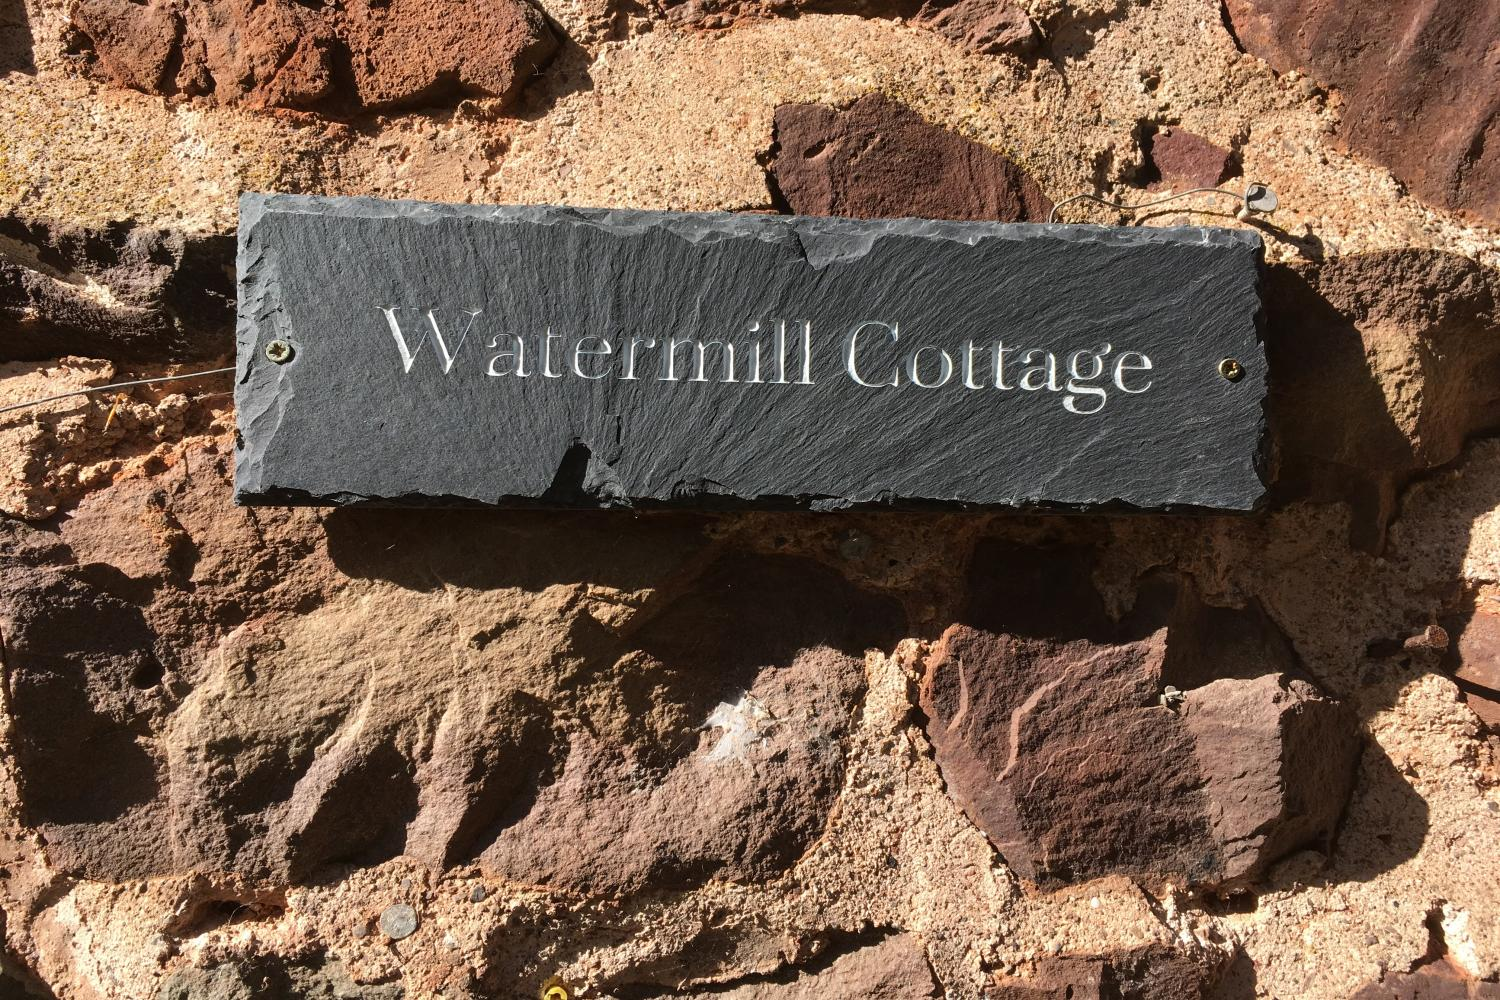 Welcome to Watermill Cottage